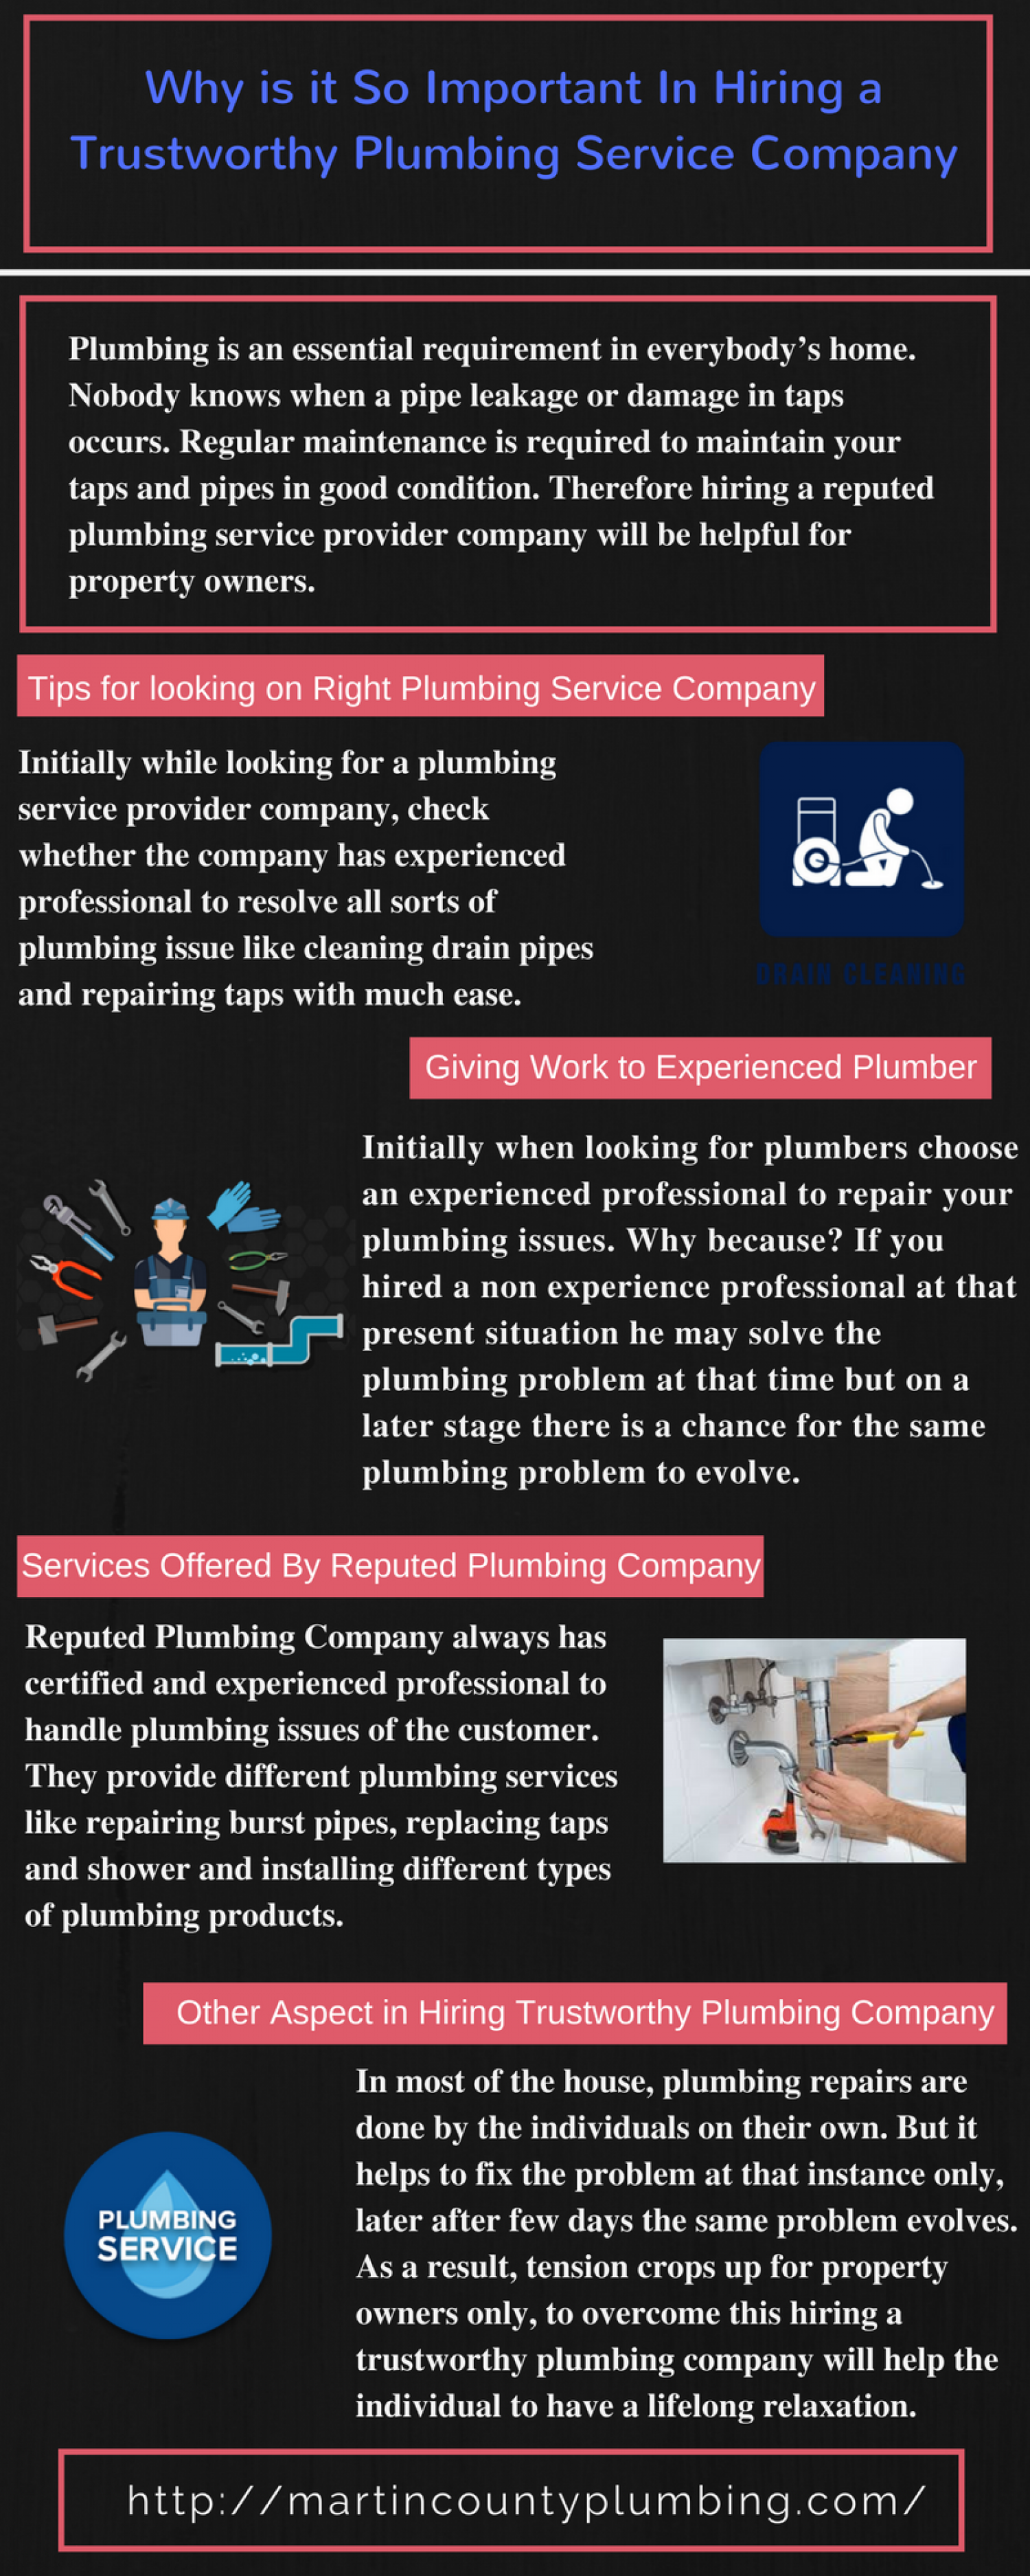 Why is it So Important In Hiring a Trustworthy Plumbing Service Company?